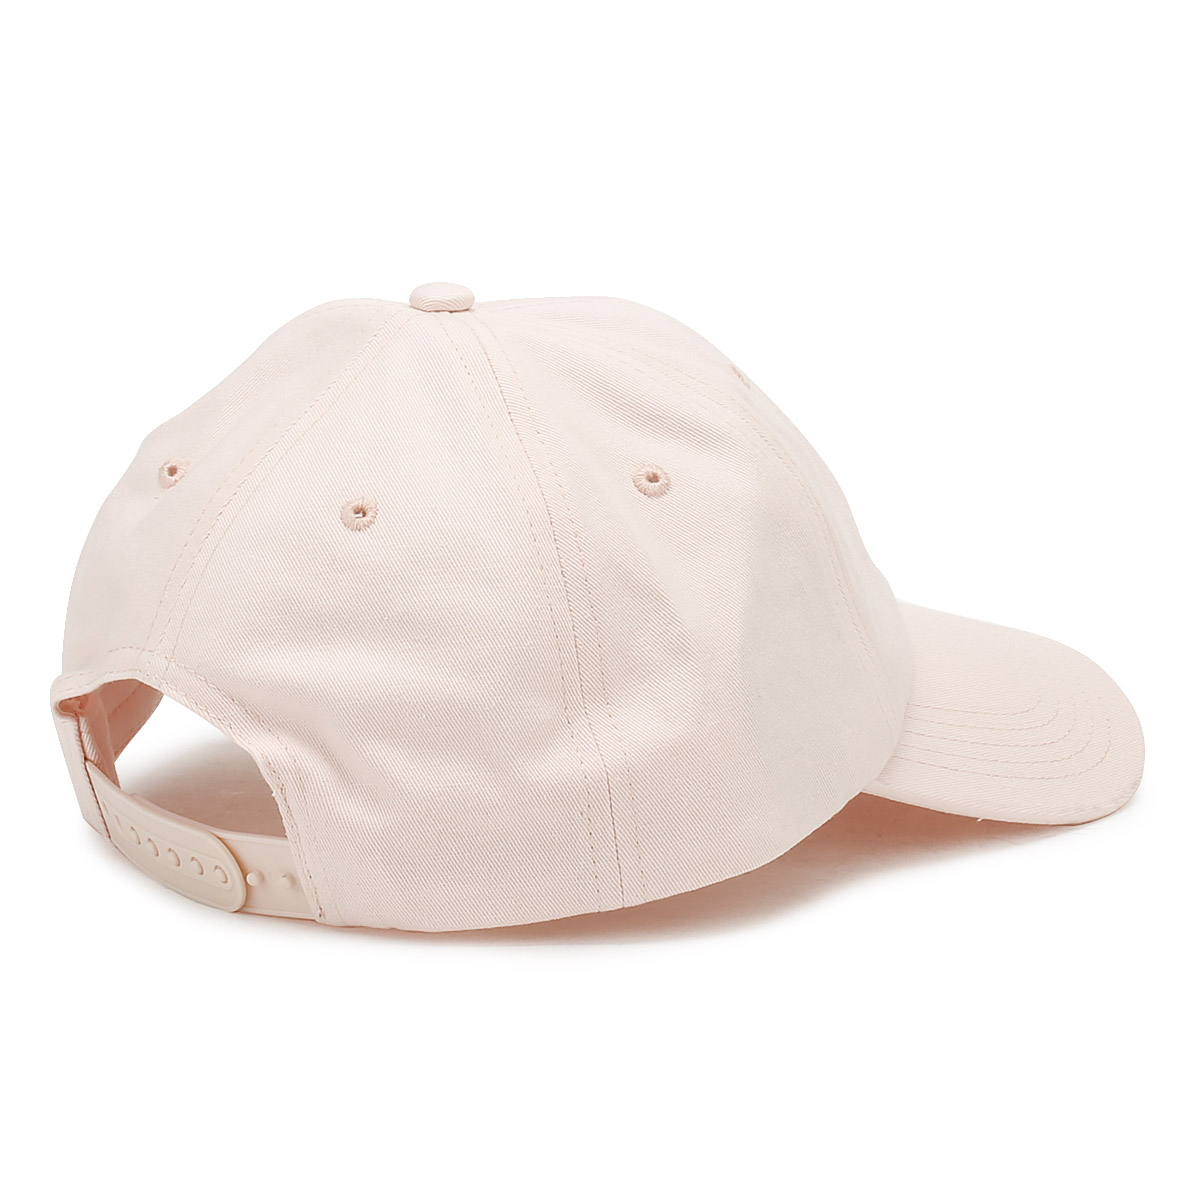 5db5e1fcbe8 Details about New Balance Pink Sandstone 6 Panel Cap Unisex Baseball Casual  Hat